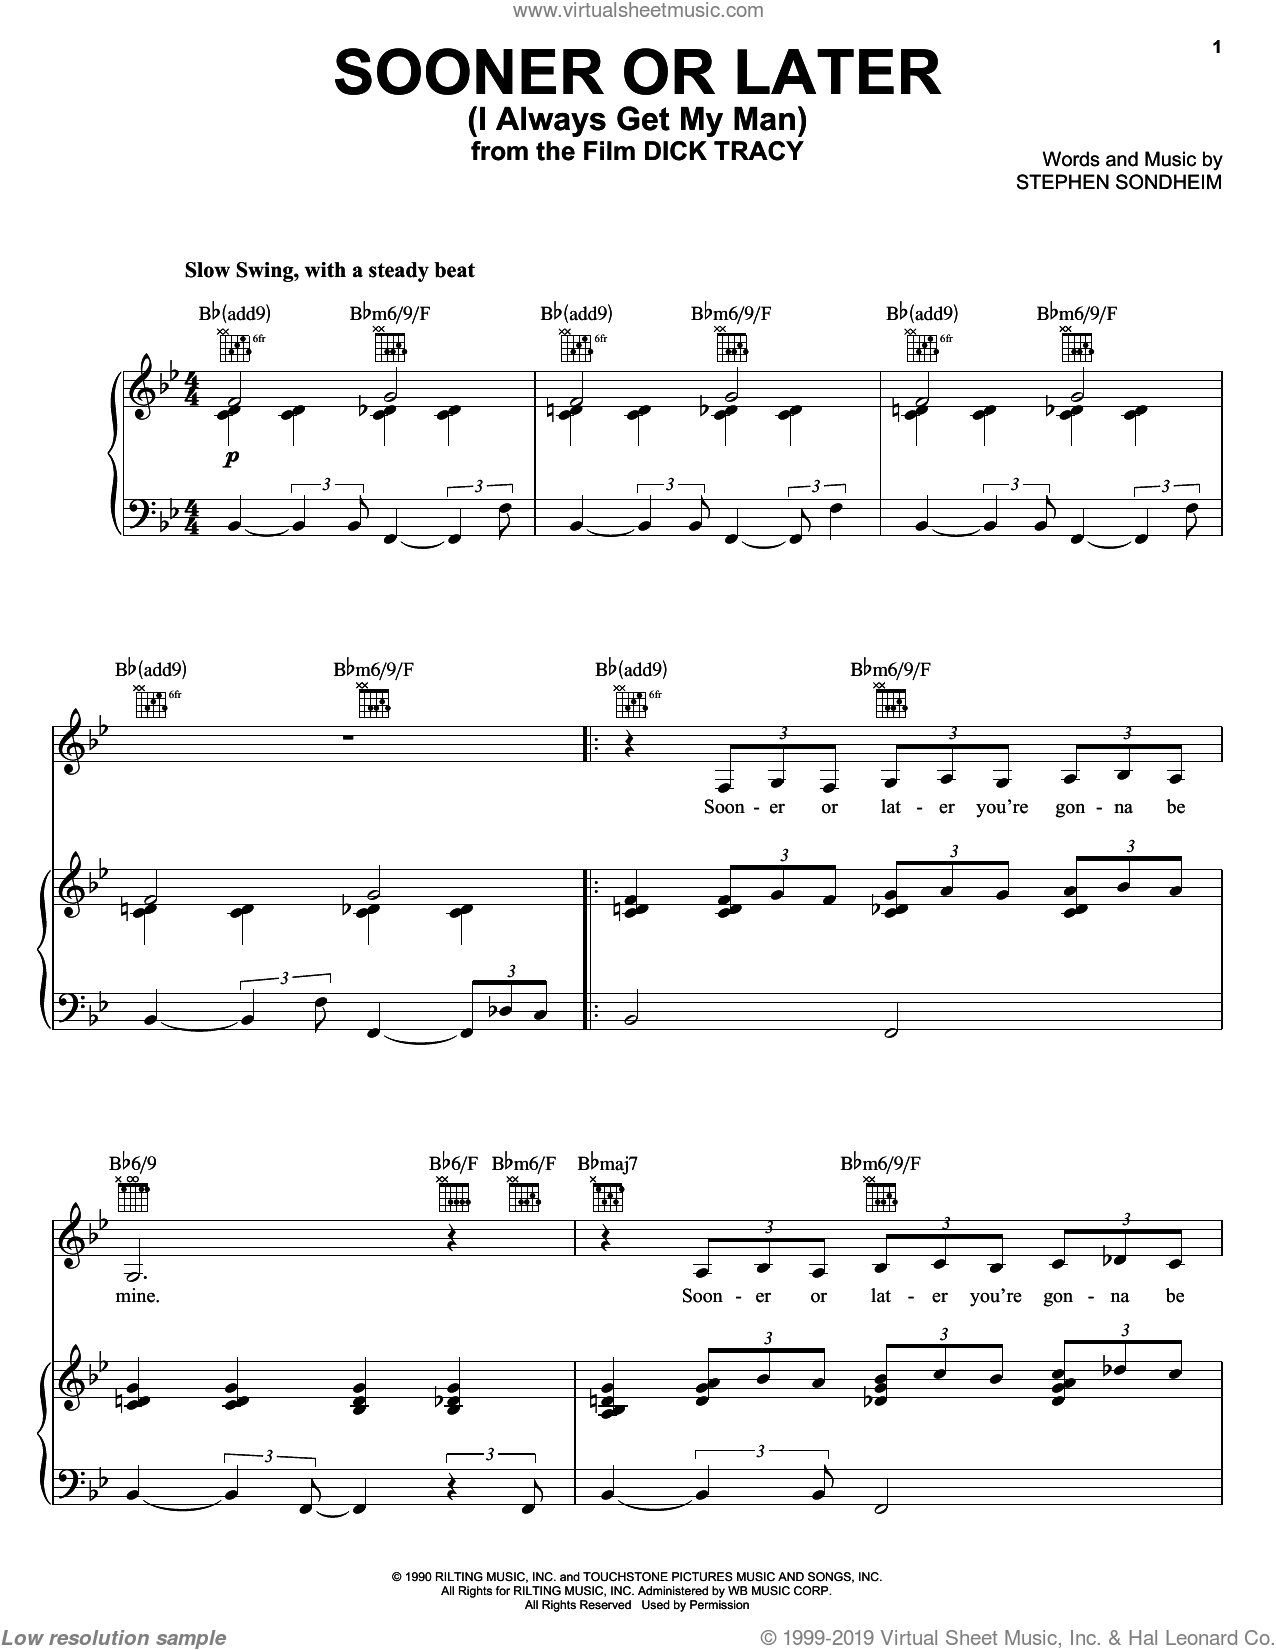 Sooner Or Later (I Always Get My Man) sheet music for voice, piano or guitar by Stephen Sondheim